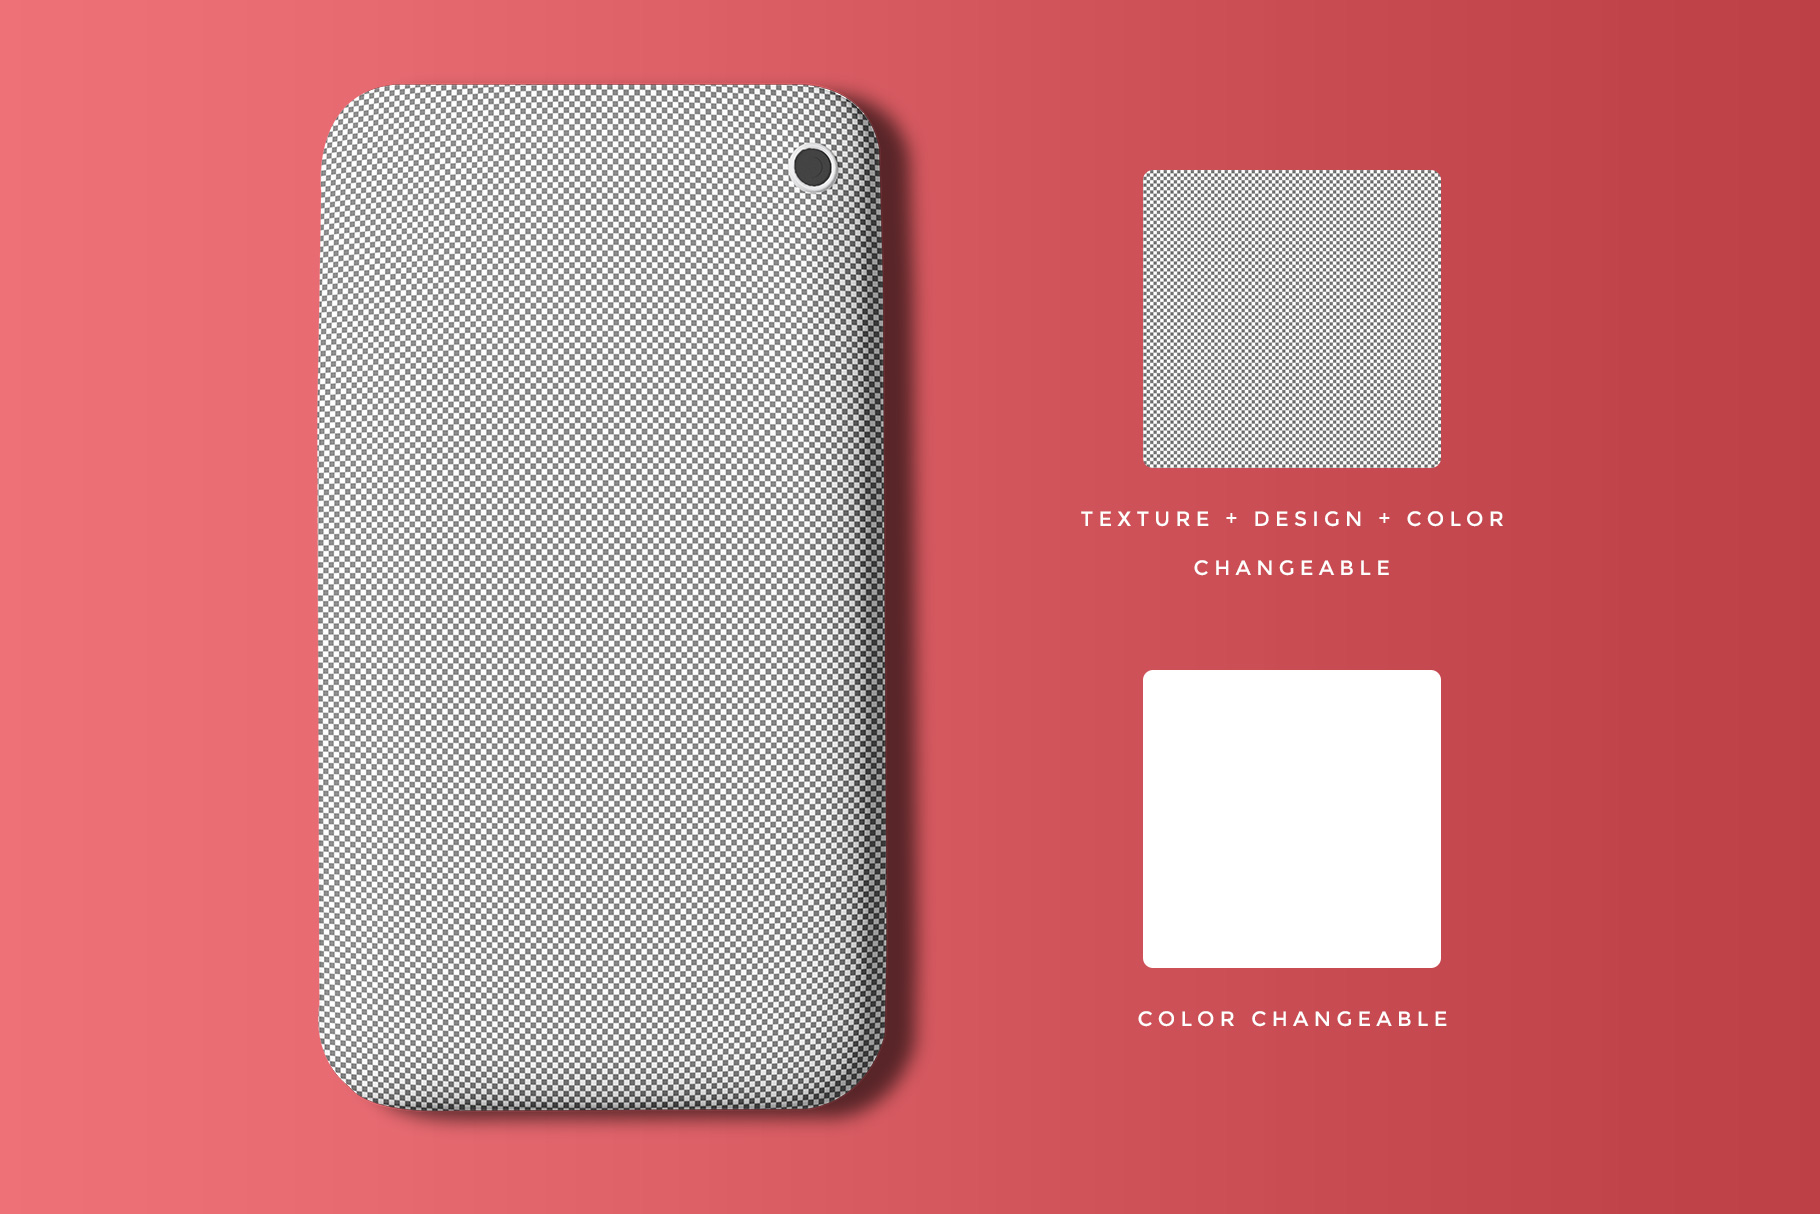 Top View Smart Phone Back Cover Mockup